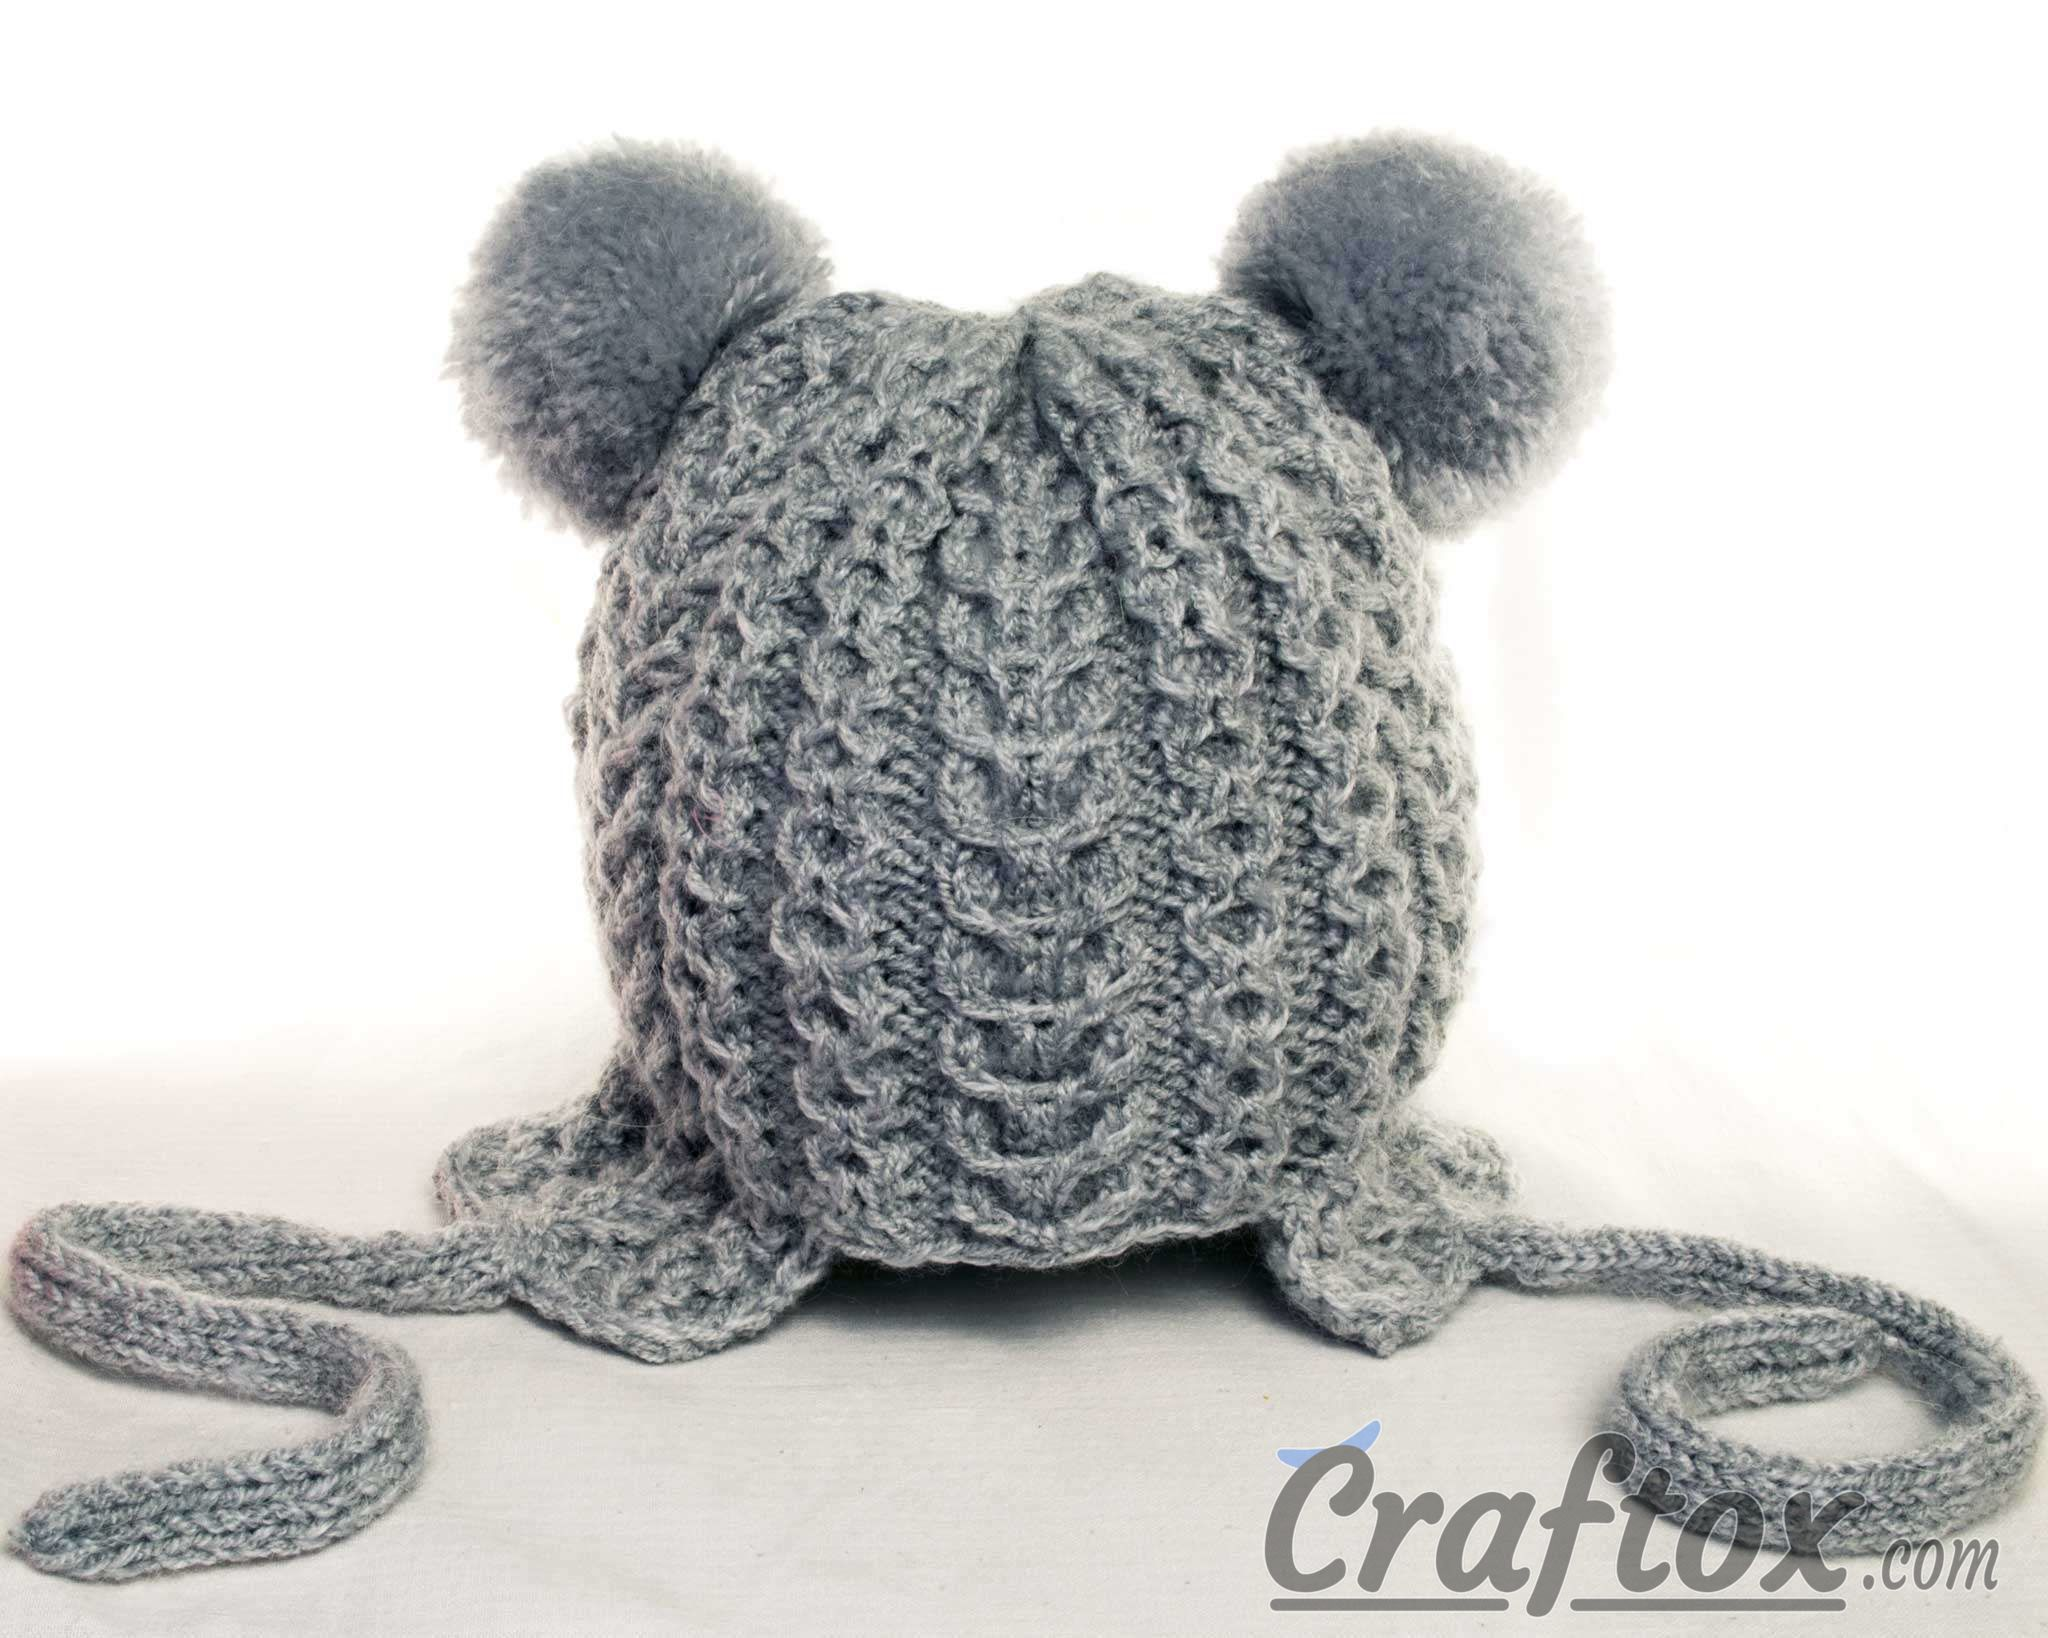 Knitting Pattern For Hat With Pom Pom : Knitting winter hat with pom poms for kid. Free pattern